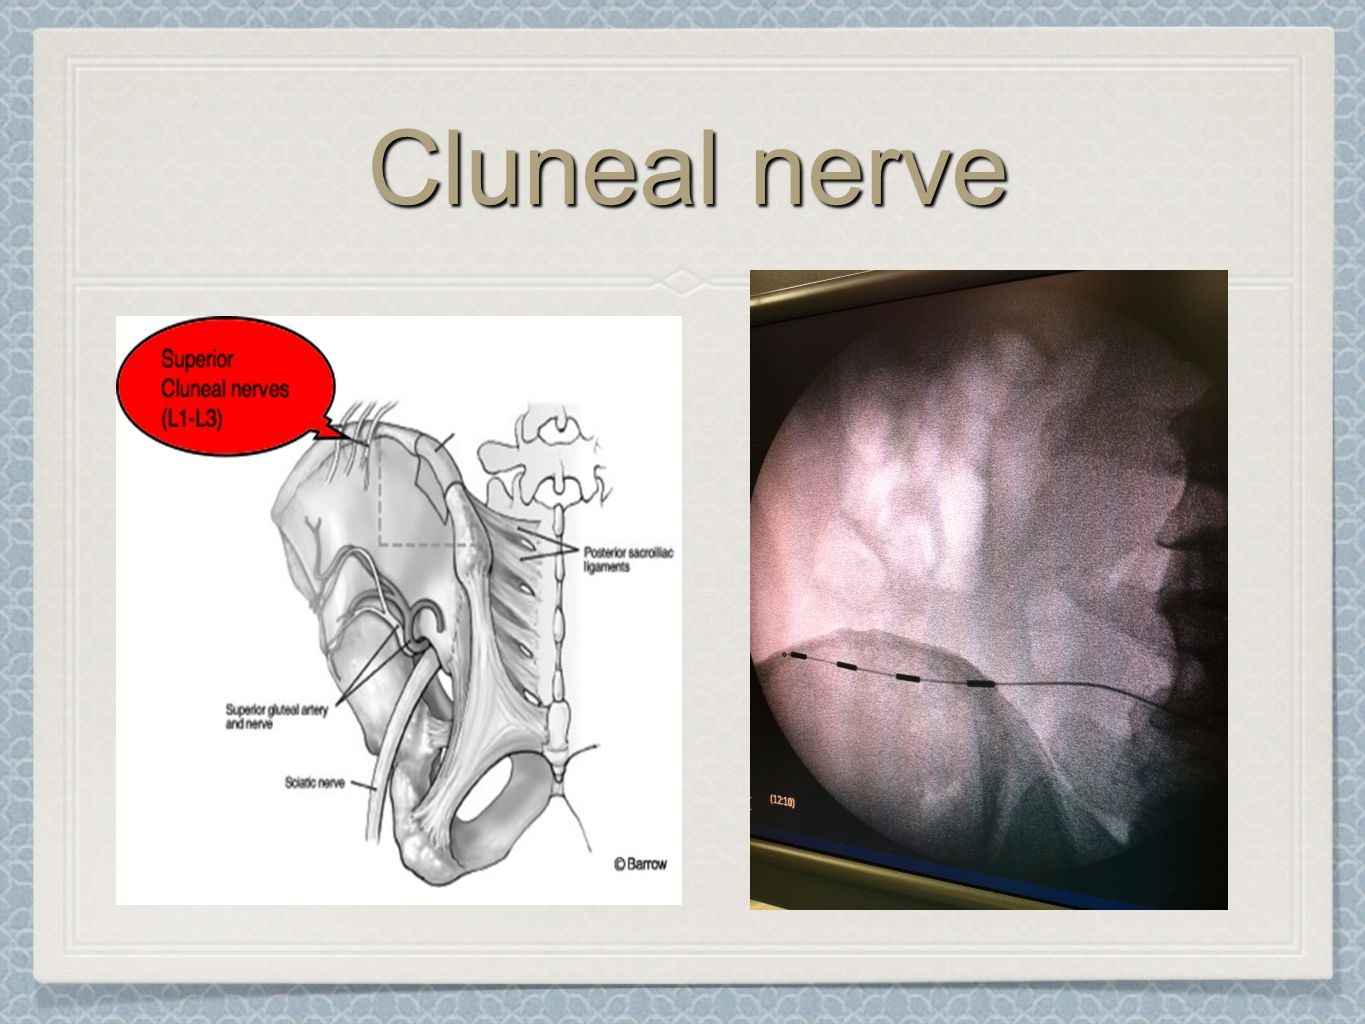 Cluneal nerve